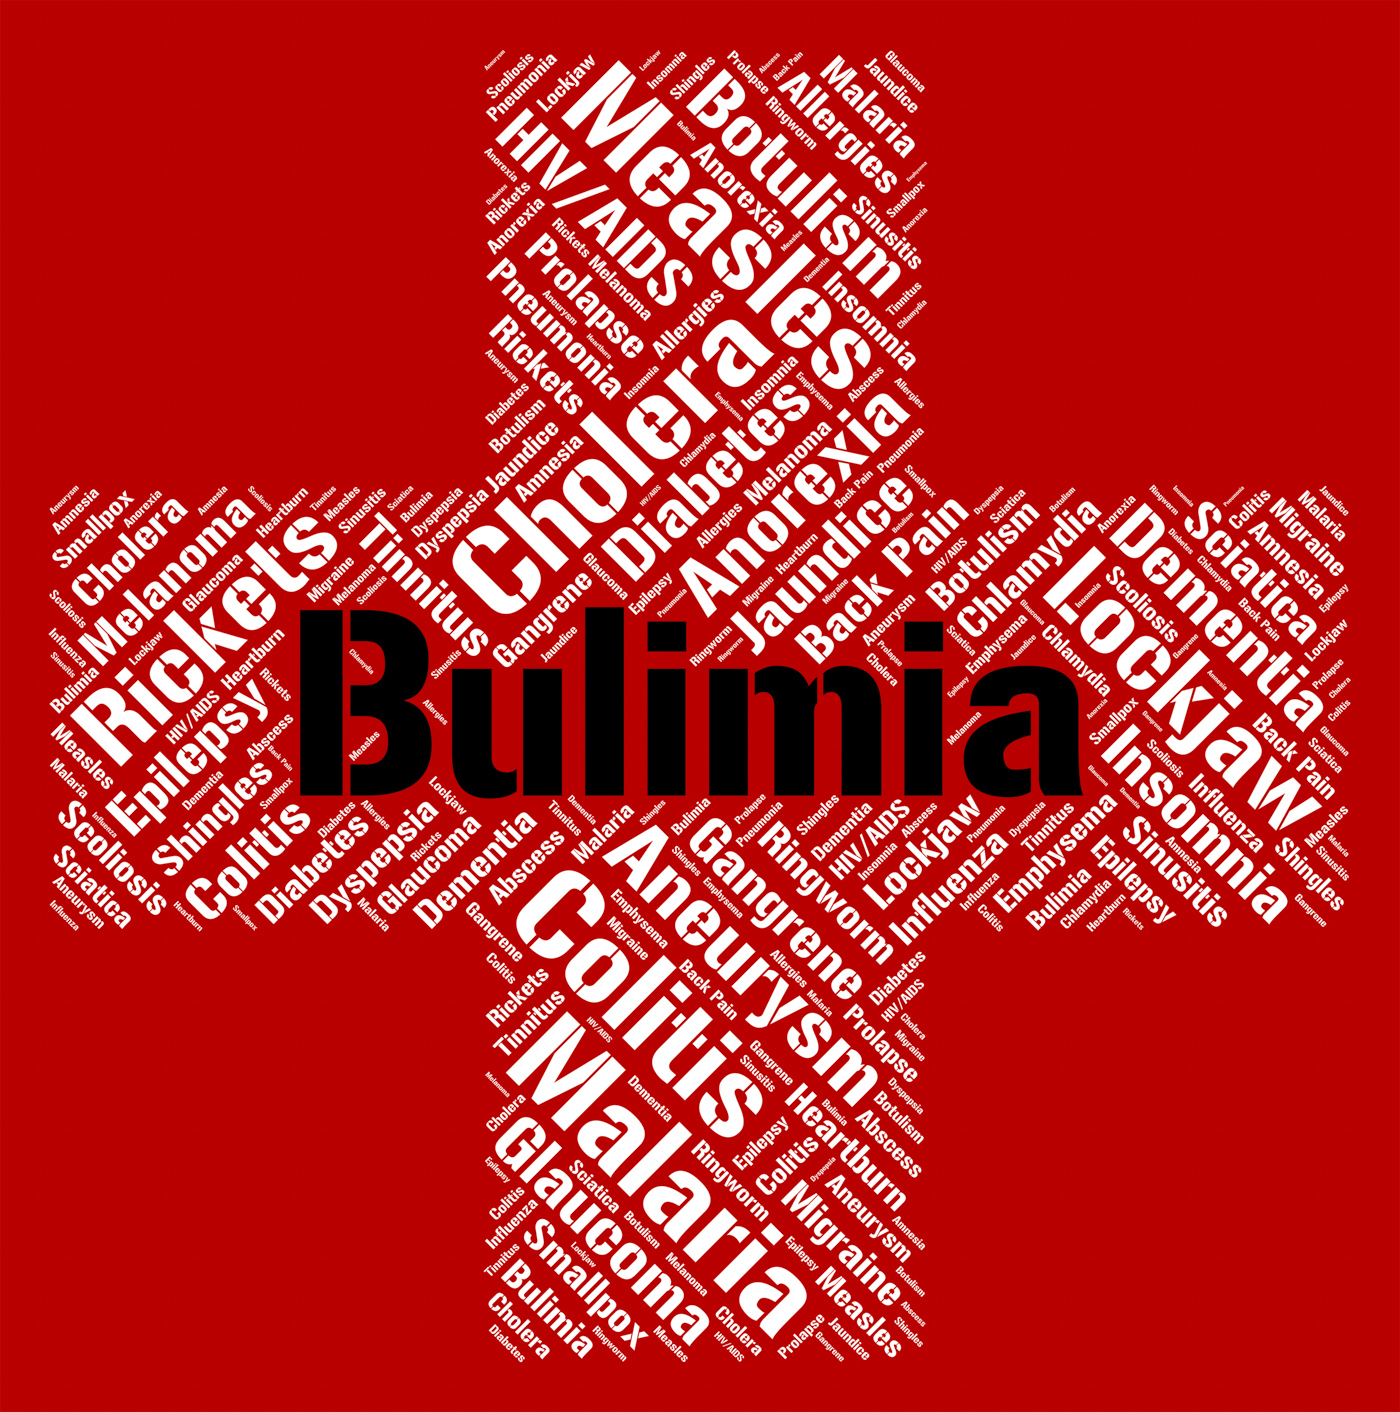 Bulimia Word Means Binge Vomit Syndrome And Affliction, Affliction, Diseased, Pica, Malady, HQ Photo